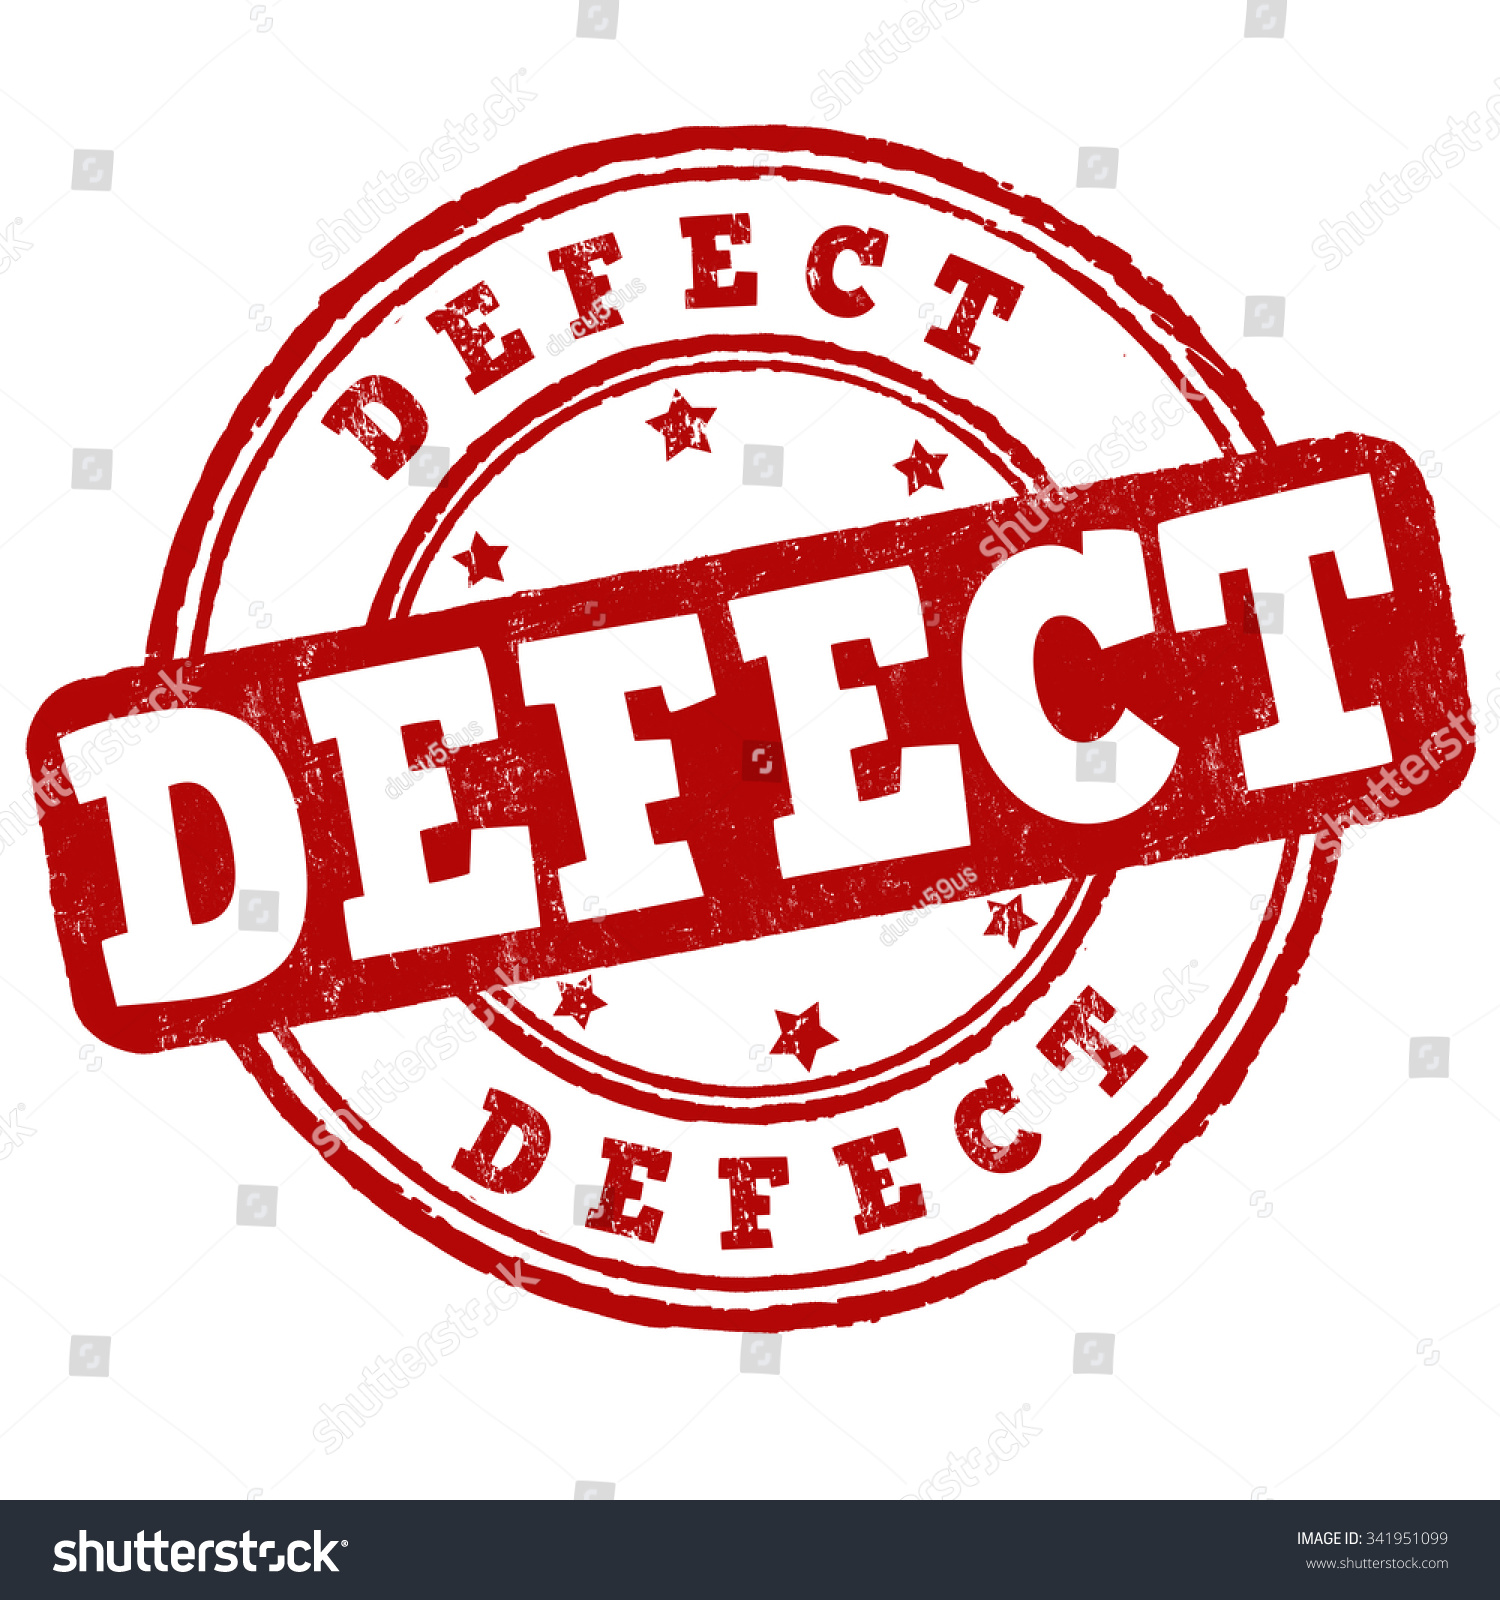 the stamp of one defect The registered inspection mechanic will sign and stamp all copies of the sero to certify that all defects cited on the sero have been fixed correctly the registered inspection mechanic will retain copy 3 (yellow) for his/her records.